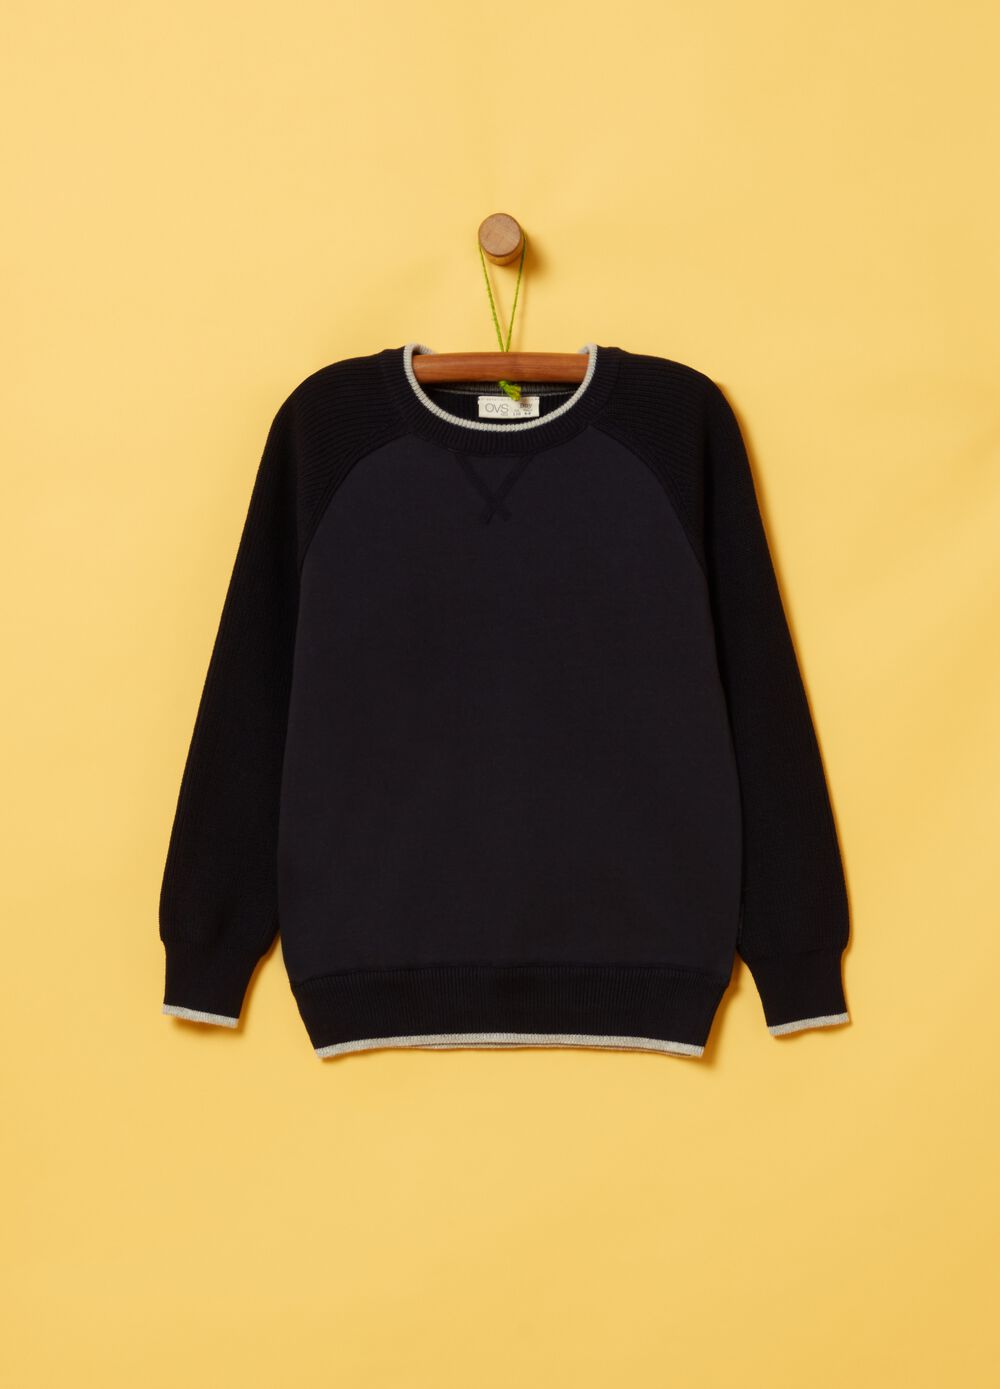 100% organic cotton pullover with ribbing